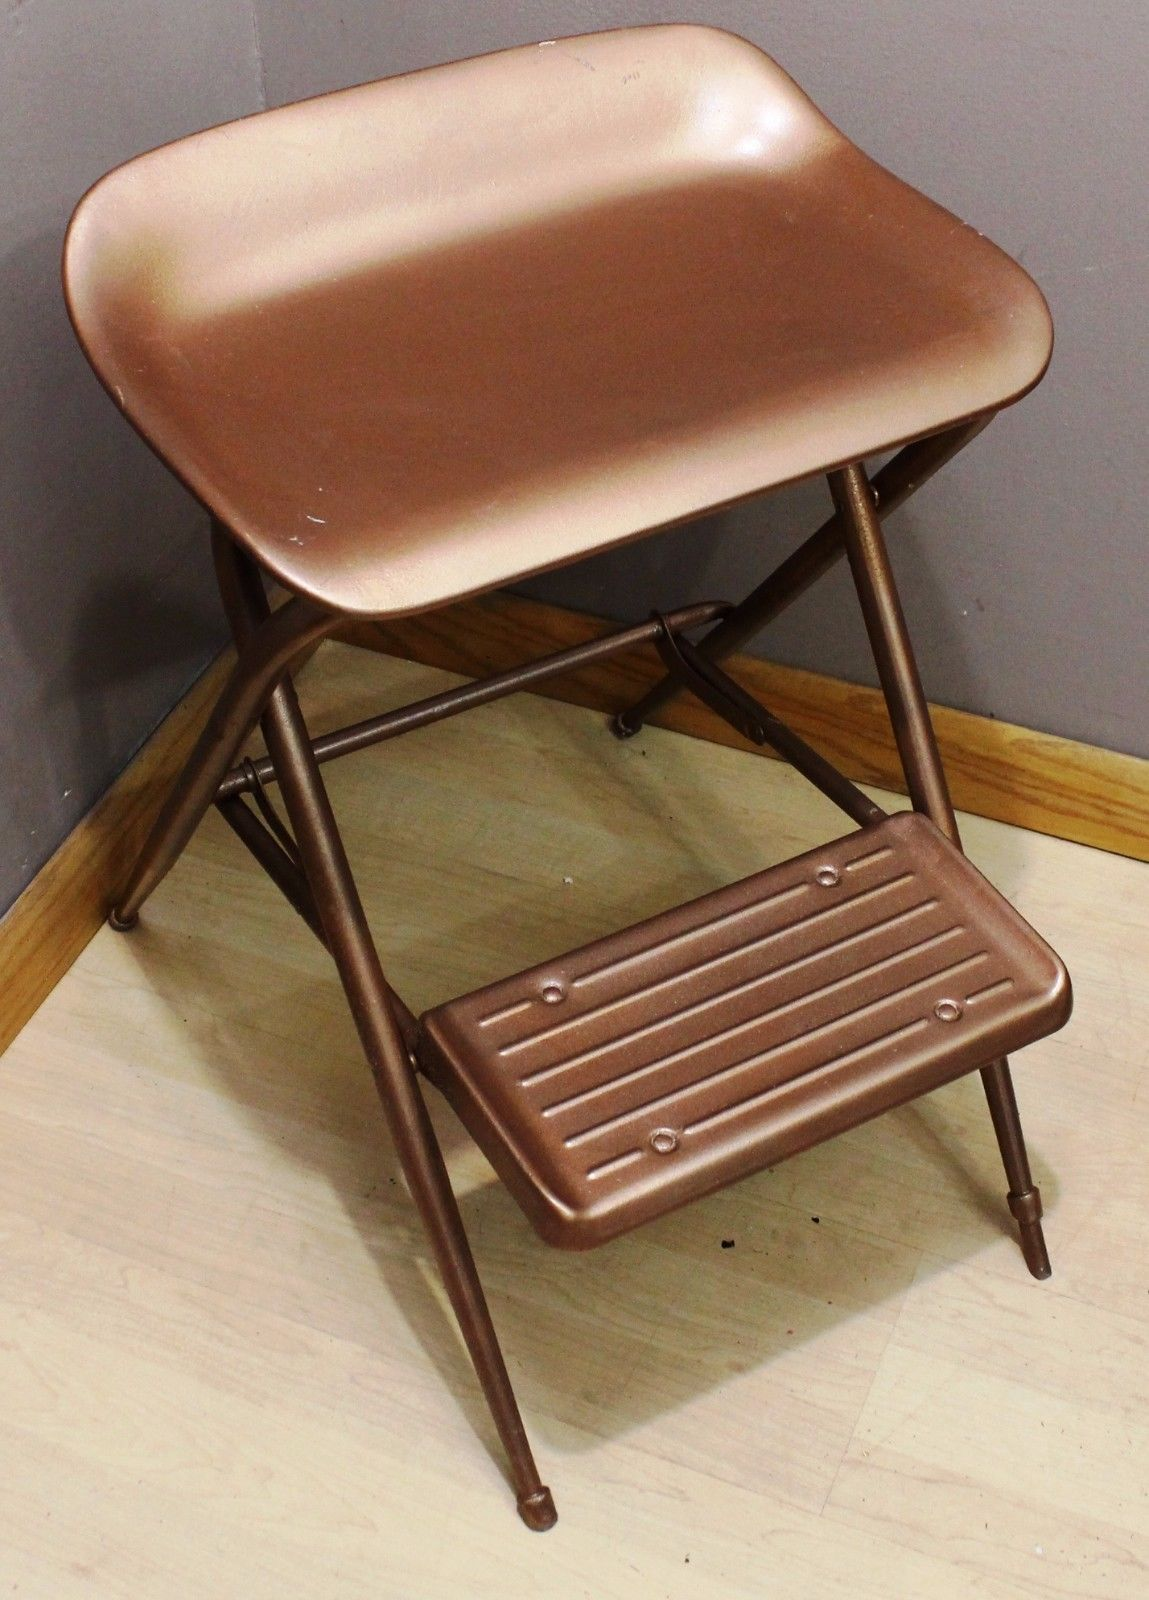 vintage samsonite folding step stool all metal kitchen shop chair